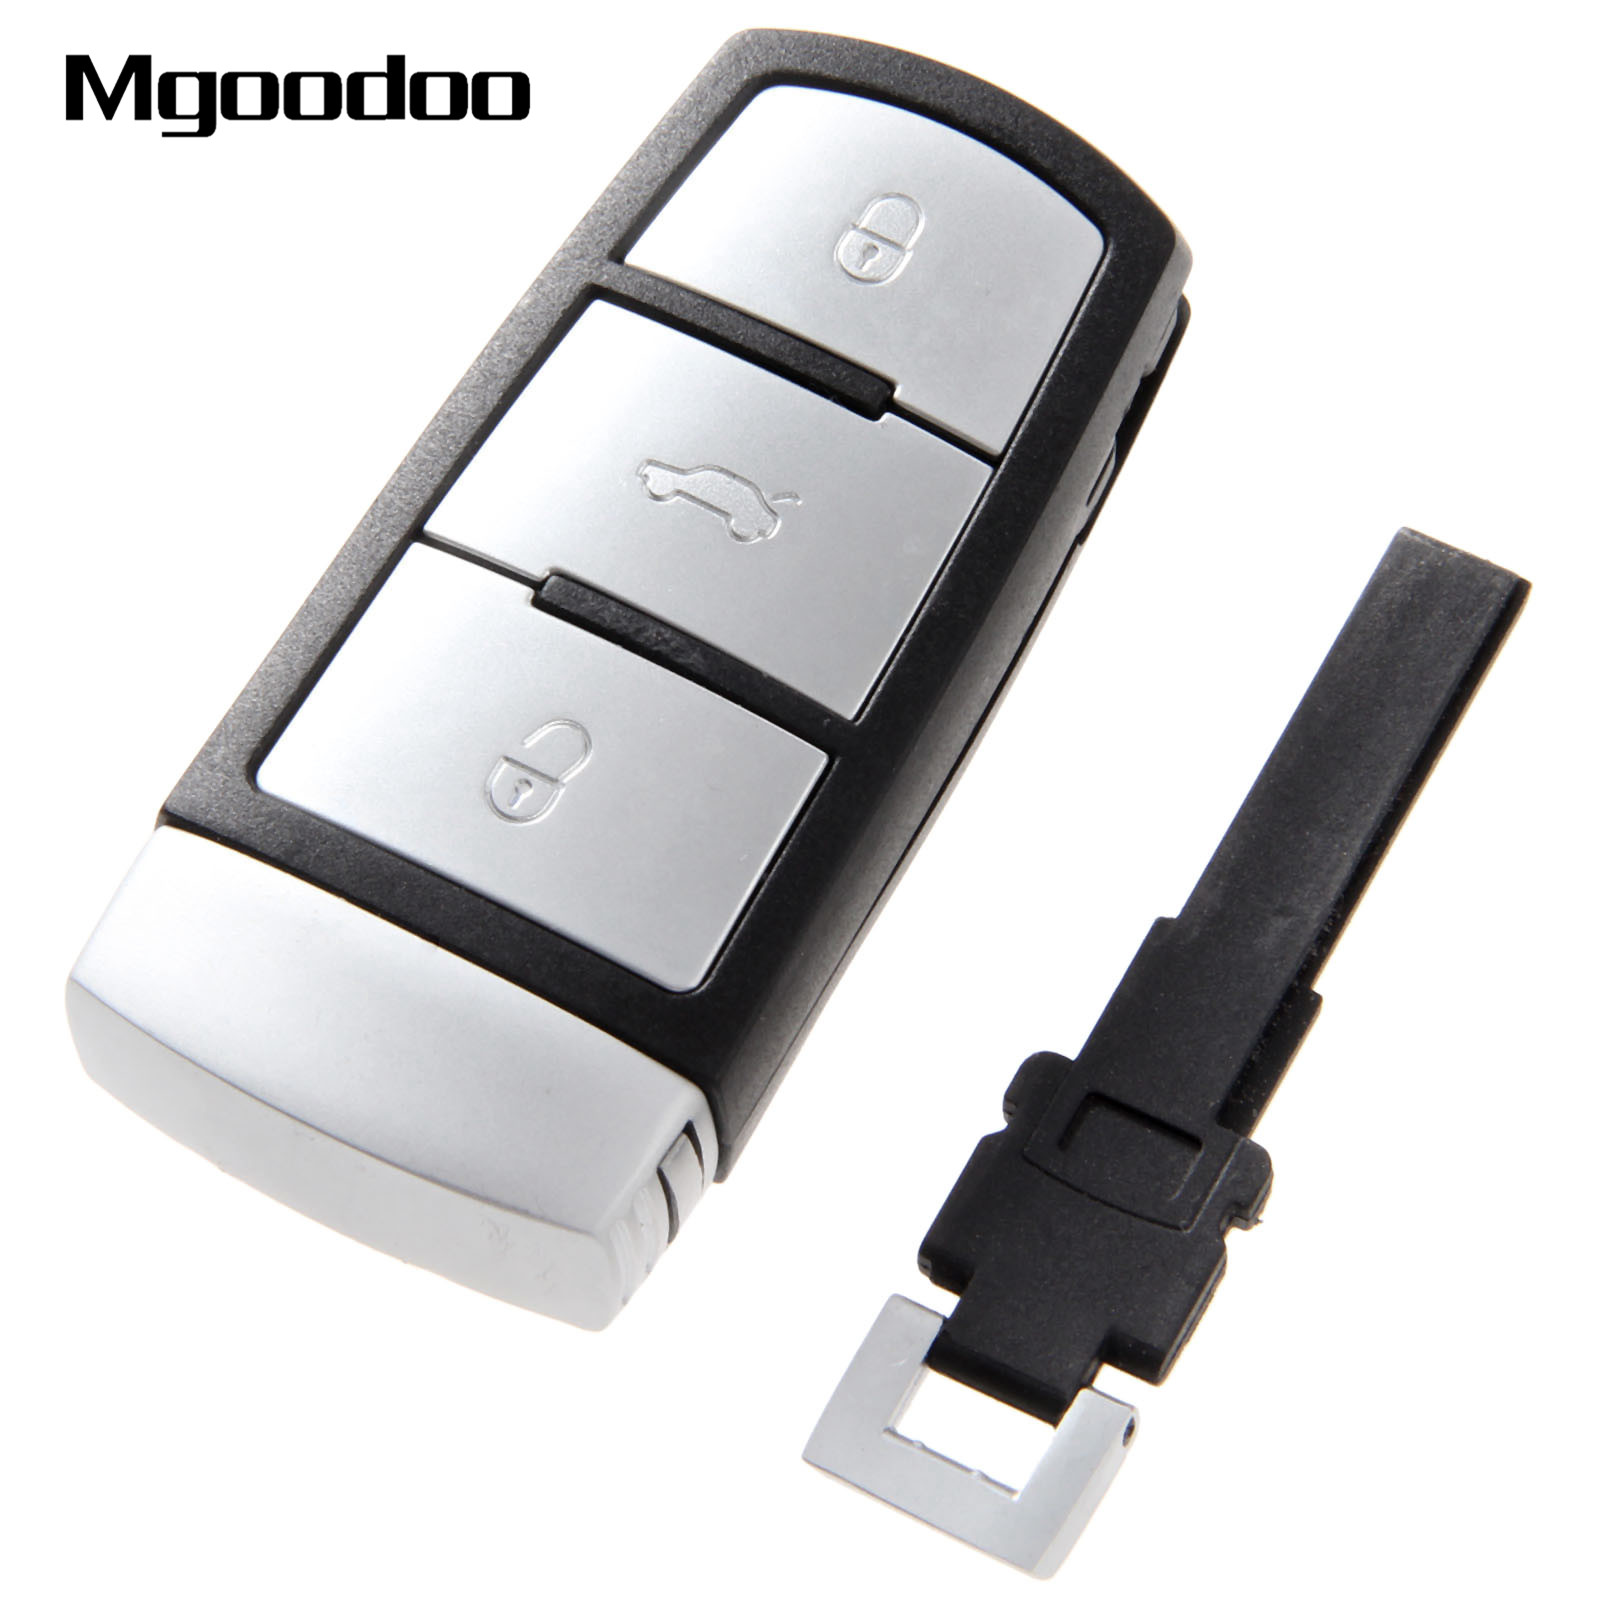 2002 Volkswagen Jetta Key: Mgoodoo 3 Buttons Smart Remote Key Fob Case For VW